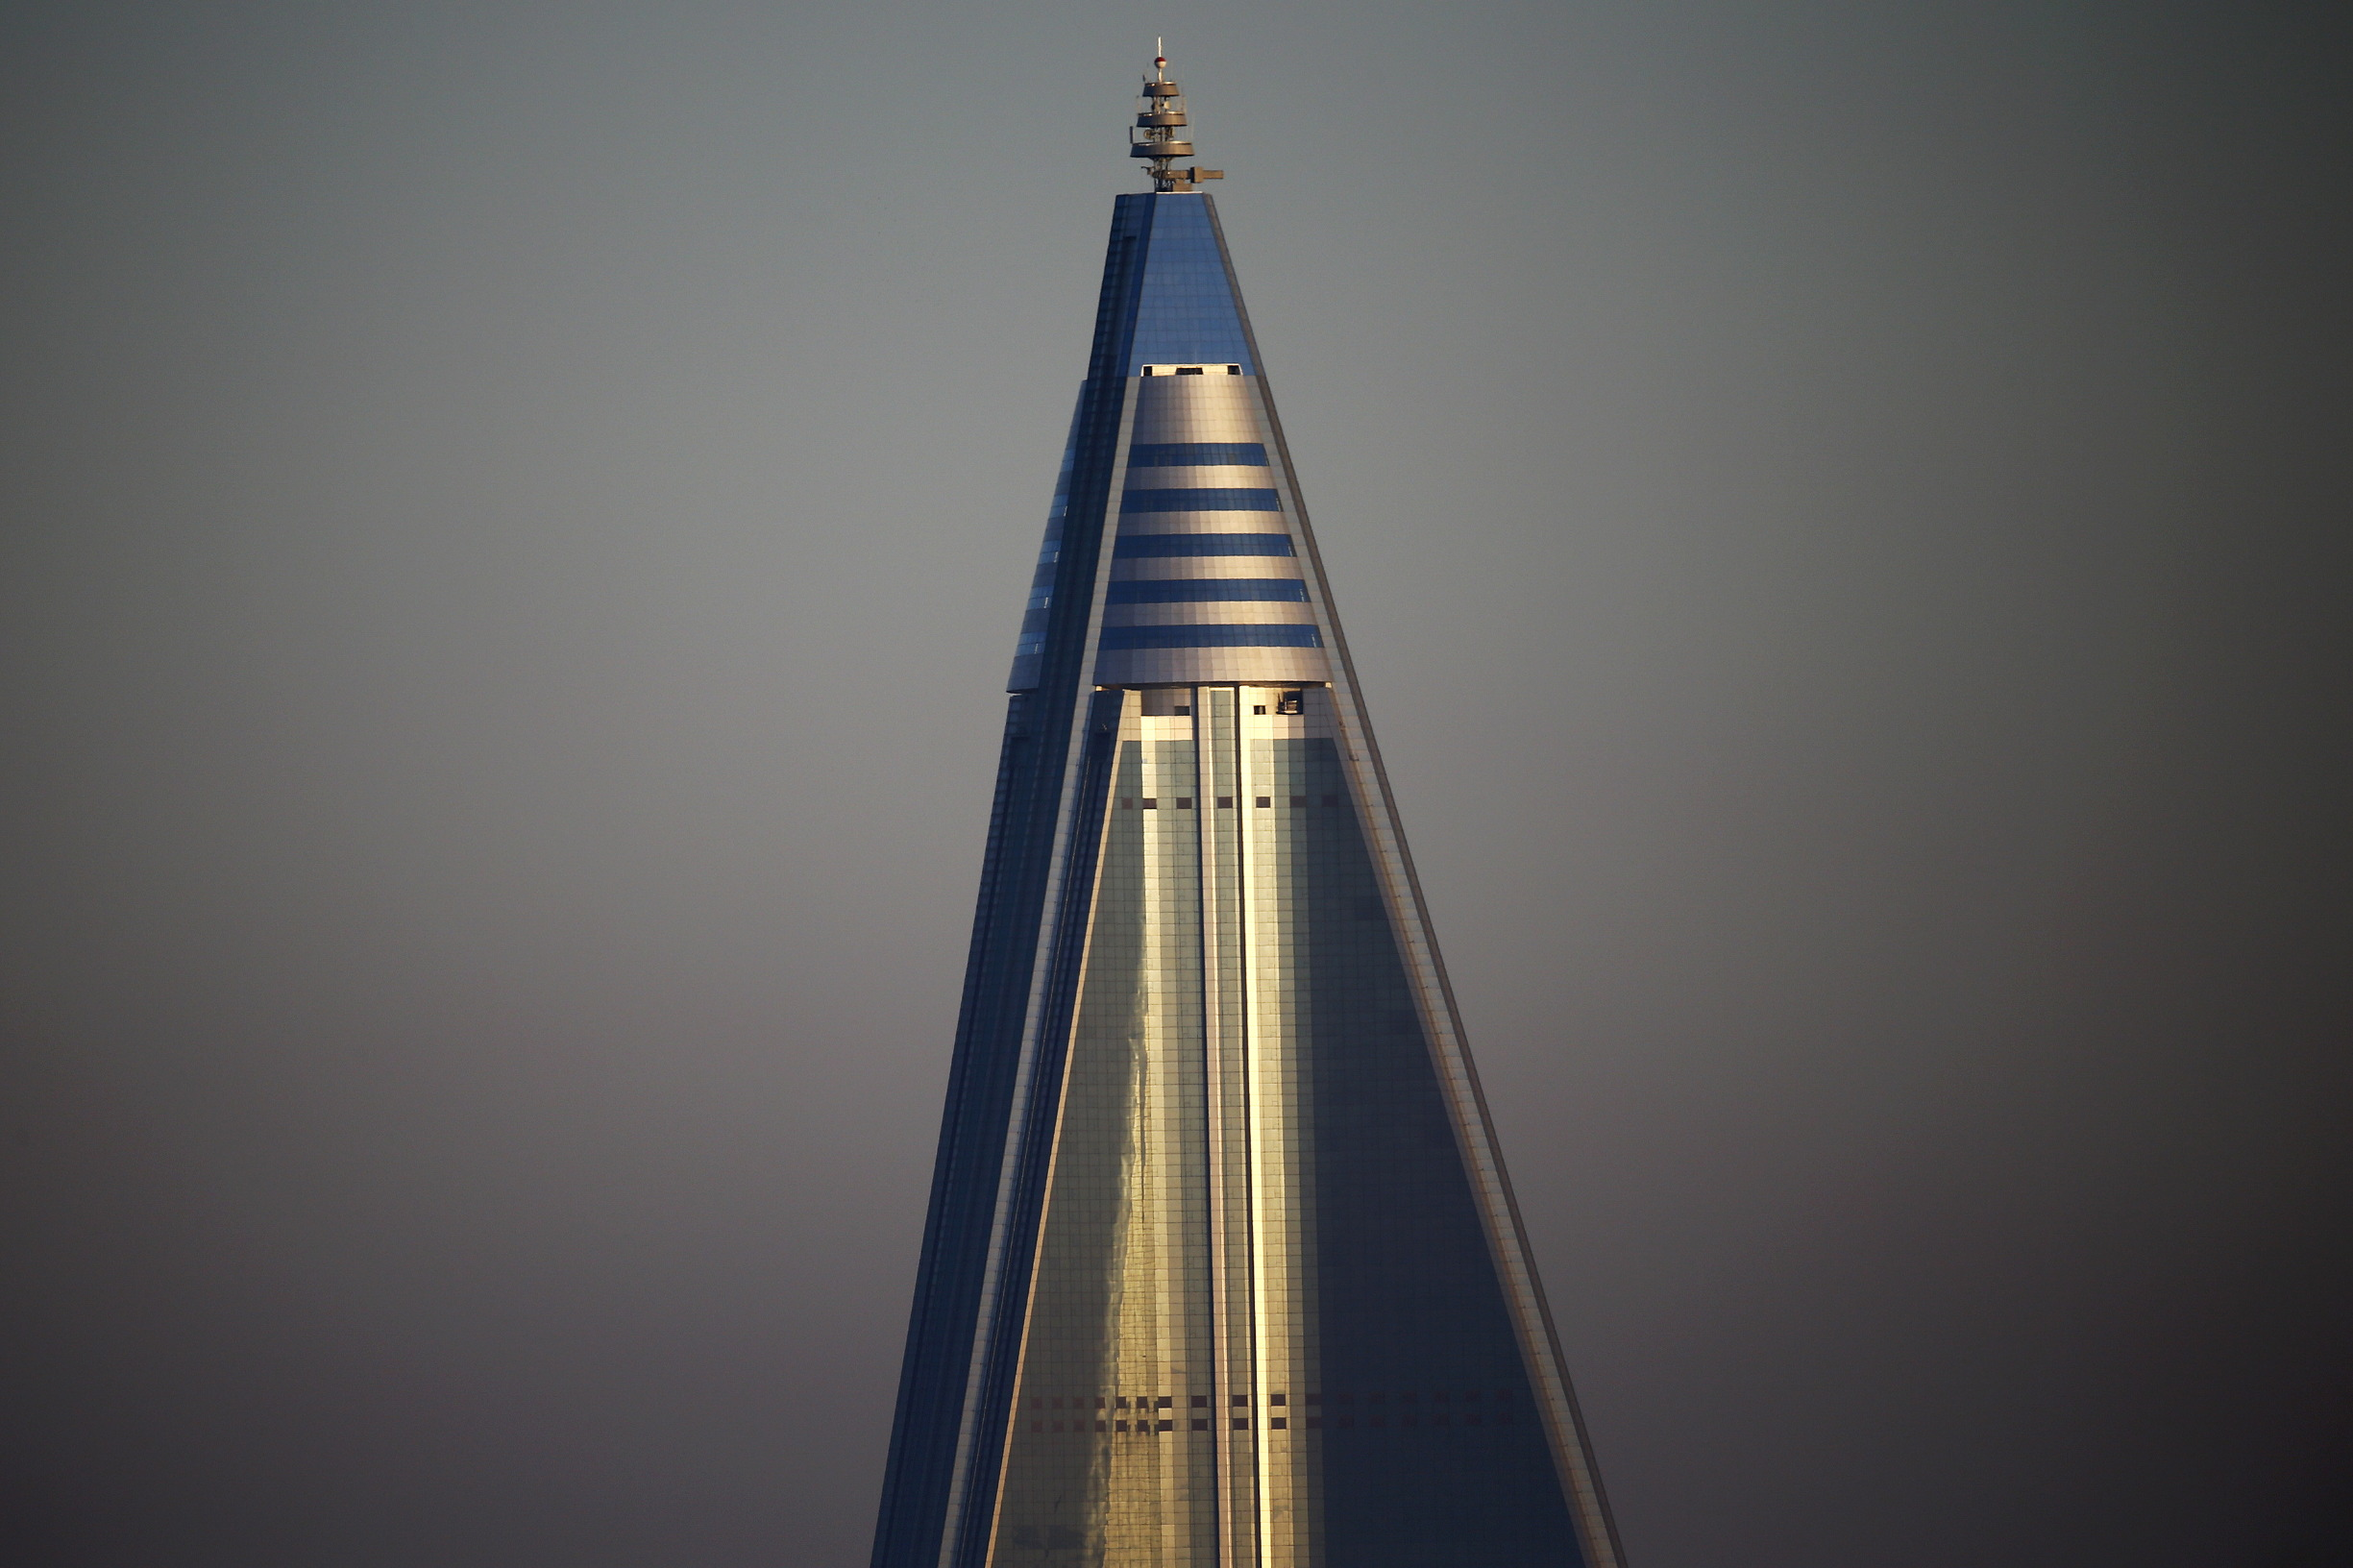 The top of the 105-storey Ryugyong Hotel, the highest building under construction in North Korea, is seen in Pyongyang, North Korea early October 9, 2015. North Korea is getting ready to celebrate the 70th anniversary of the founding of its ruling Workers' Party of Korea on October 10. REUTERS/Damir Sagolj - GF10000238167